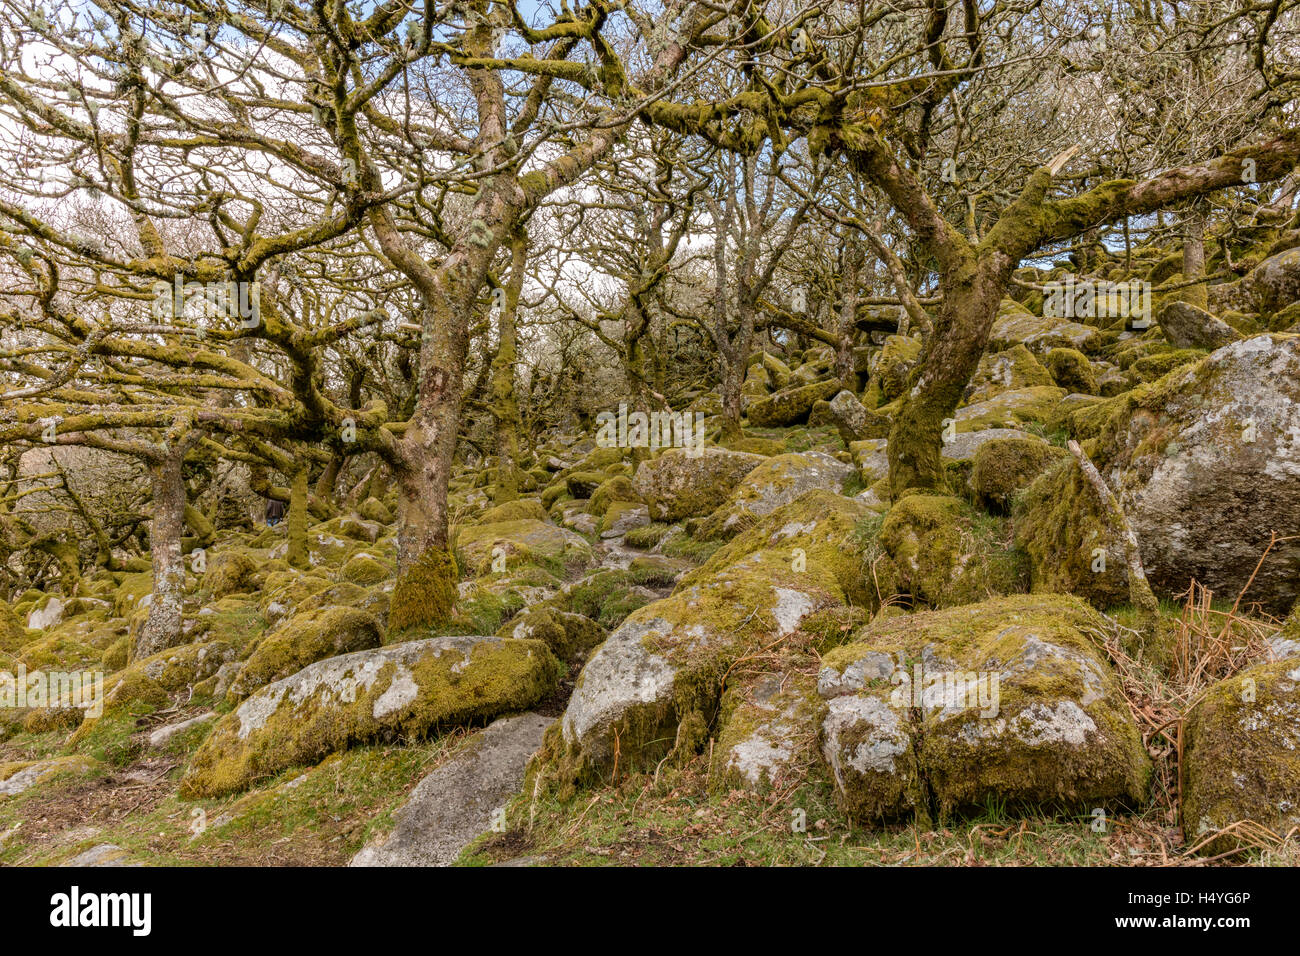 Ancient oaks in Wistmans Wood, Dartmoor National Park, Devon, Great Britain Stock Photo